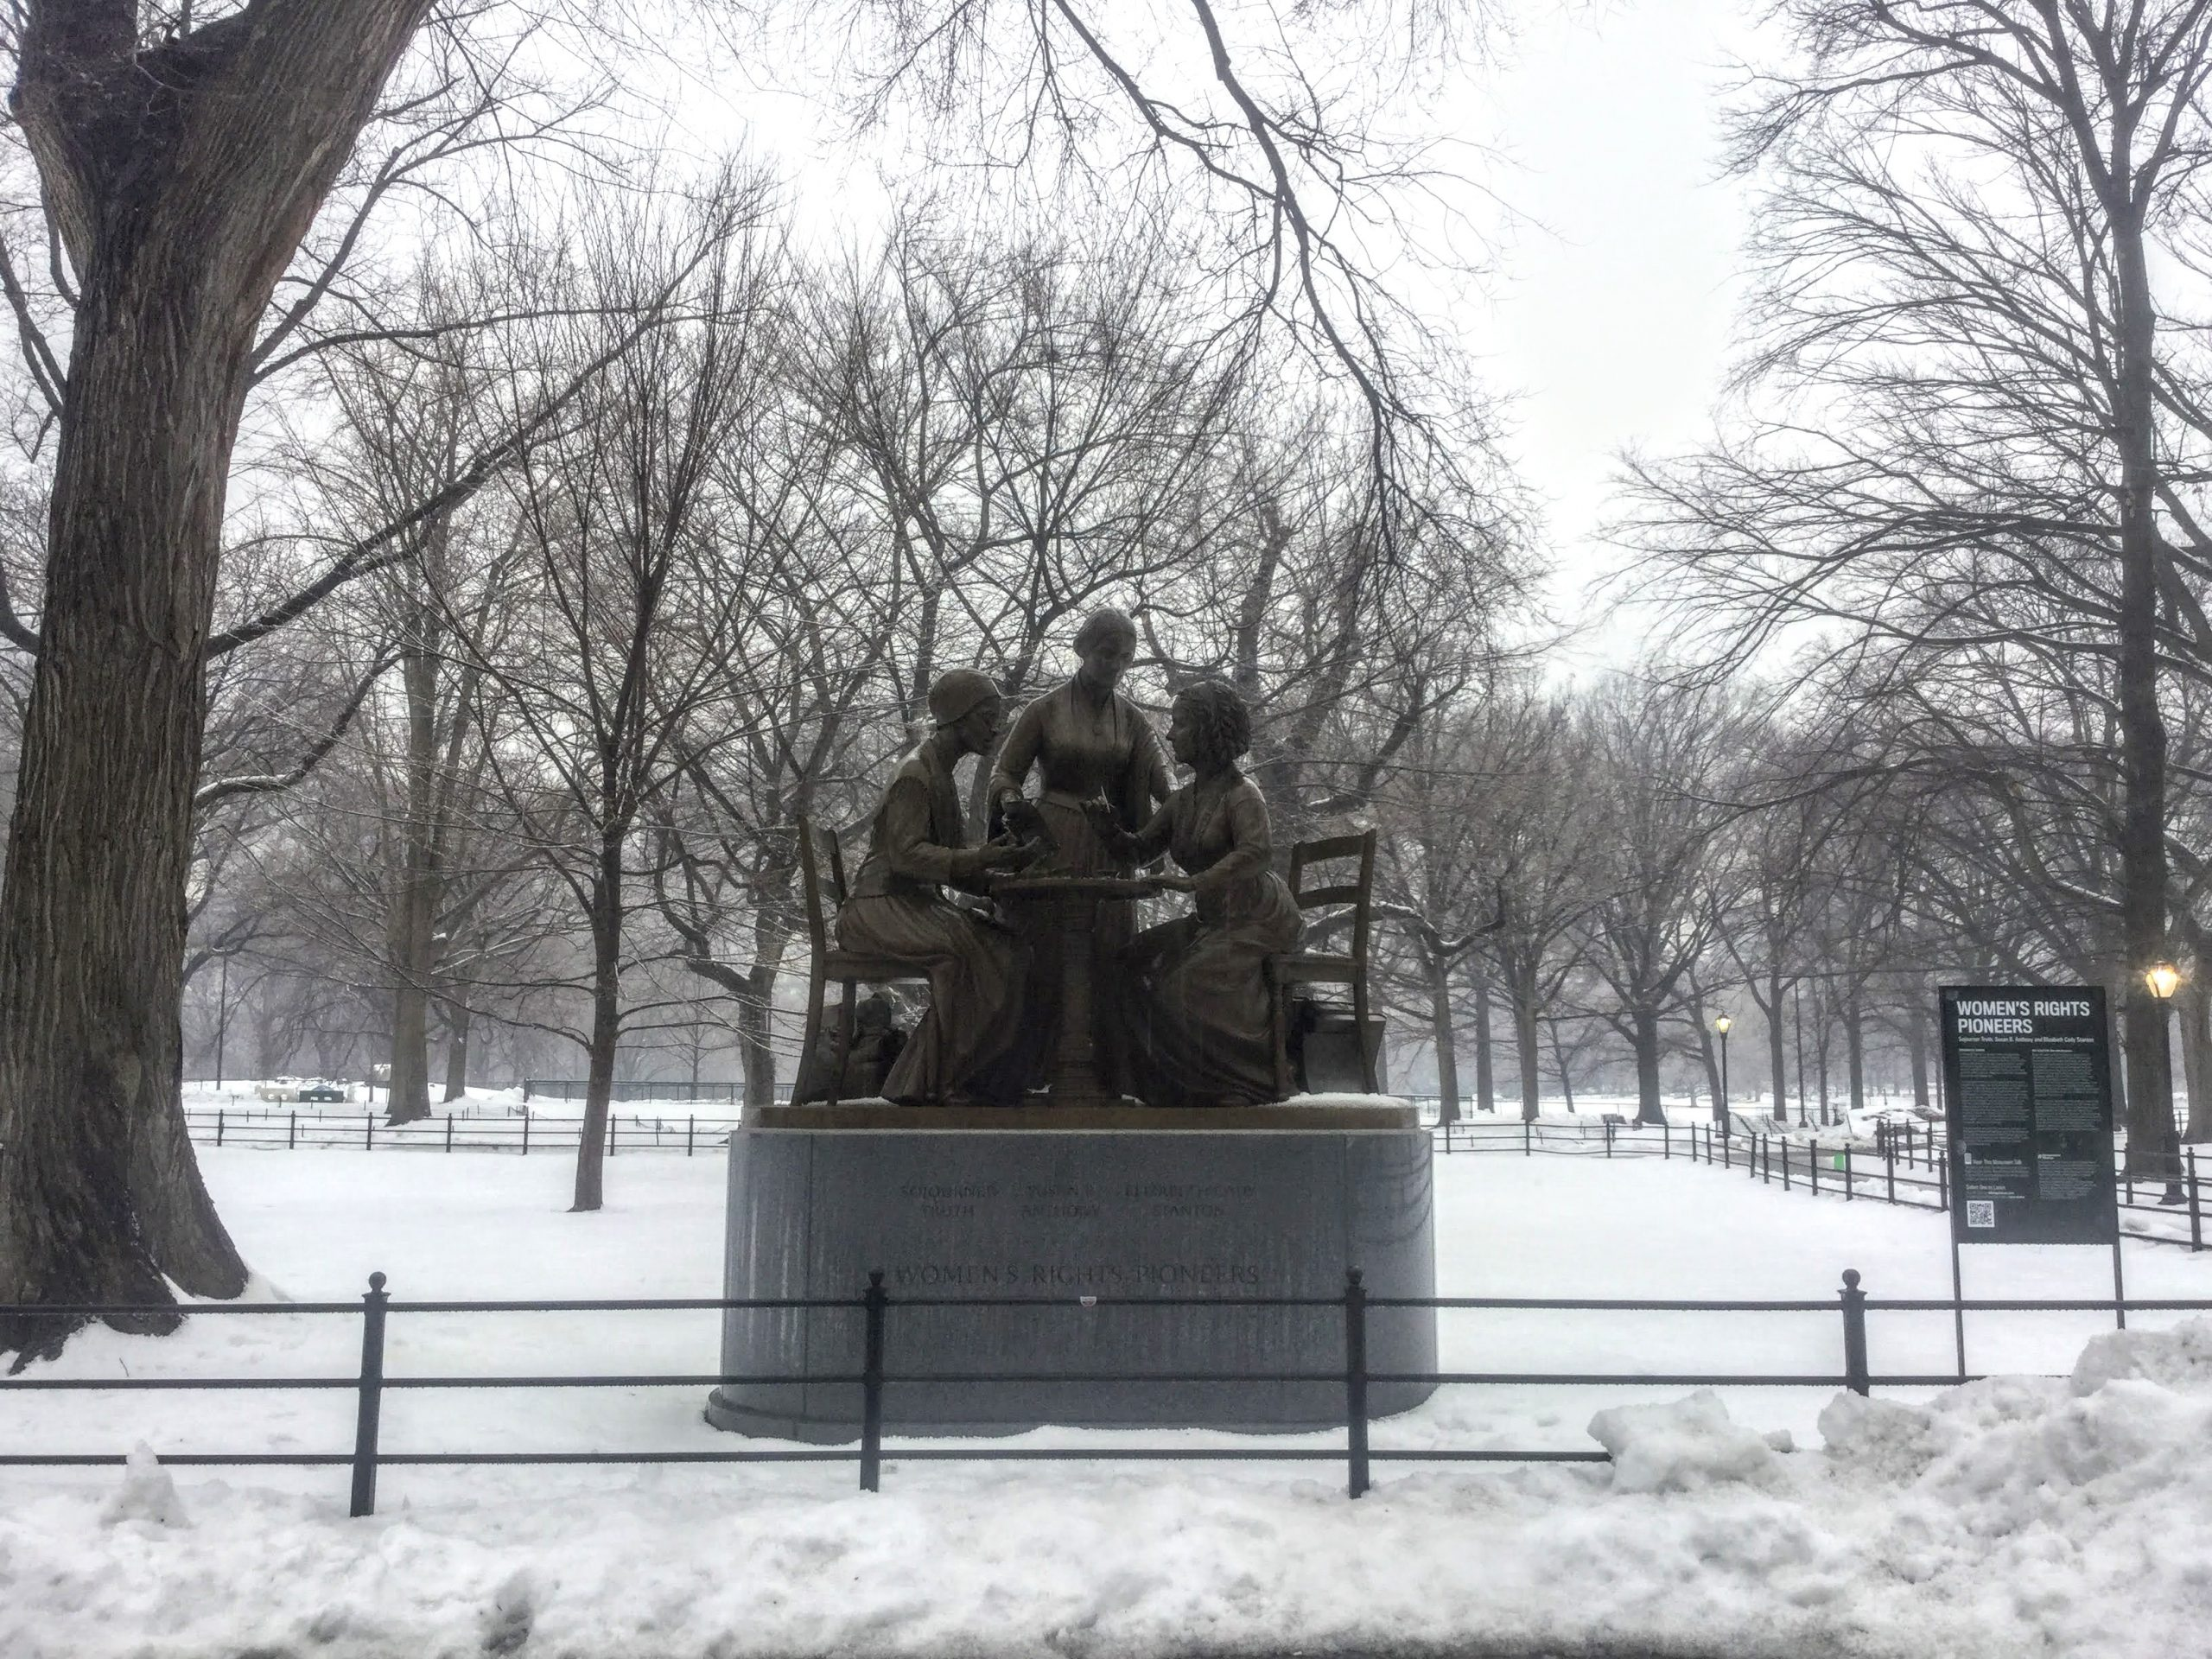 Women's Rights Pioneers statue